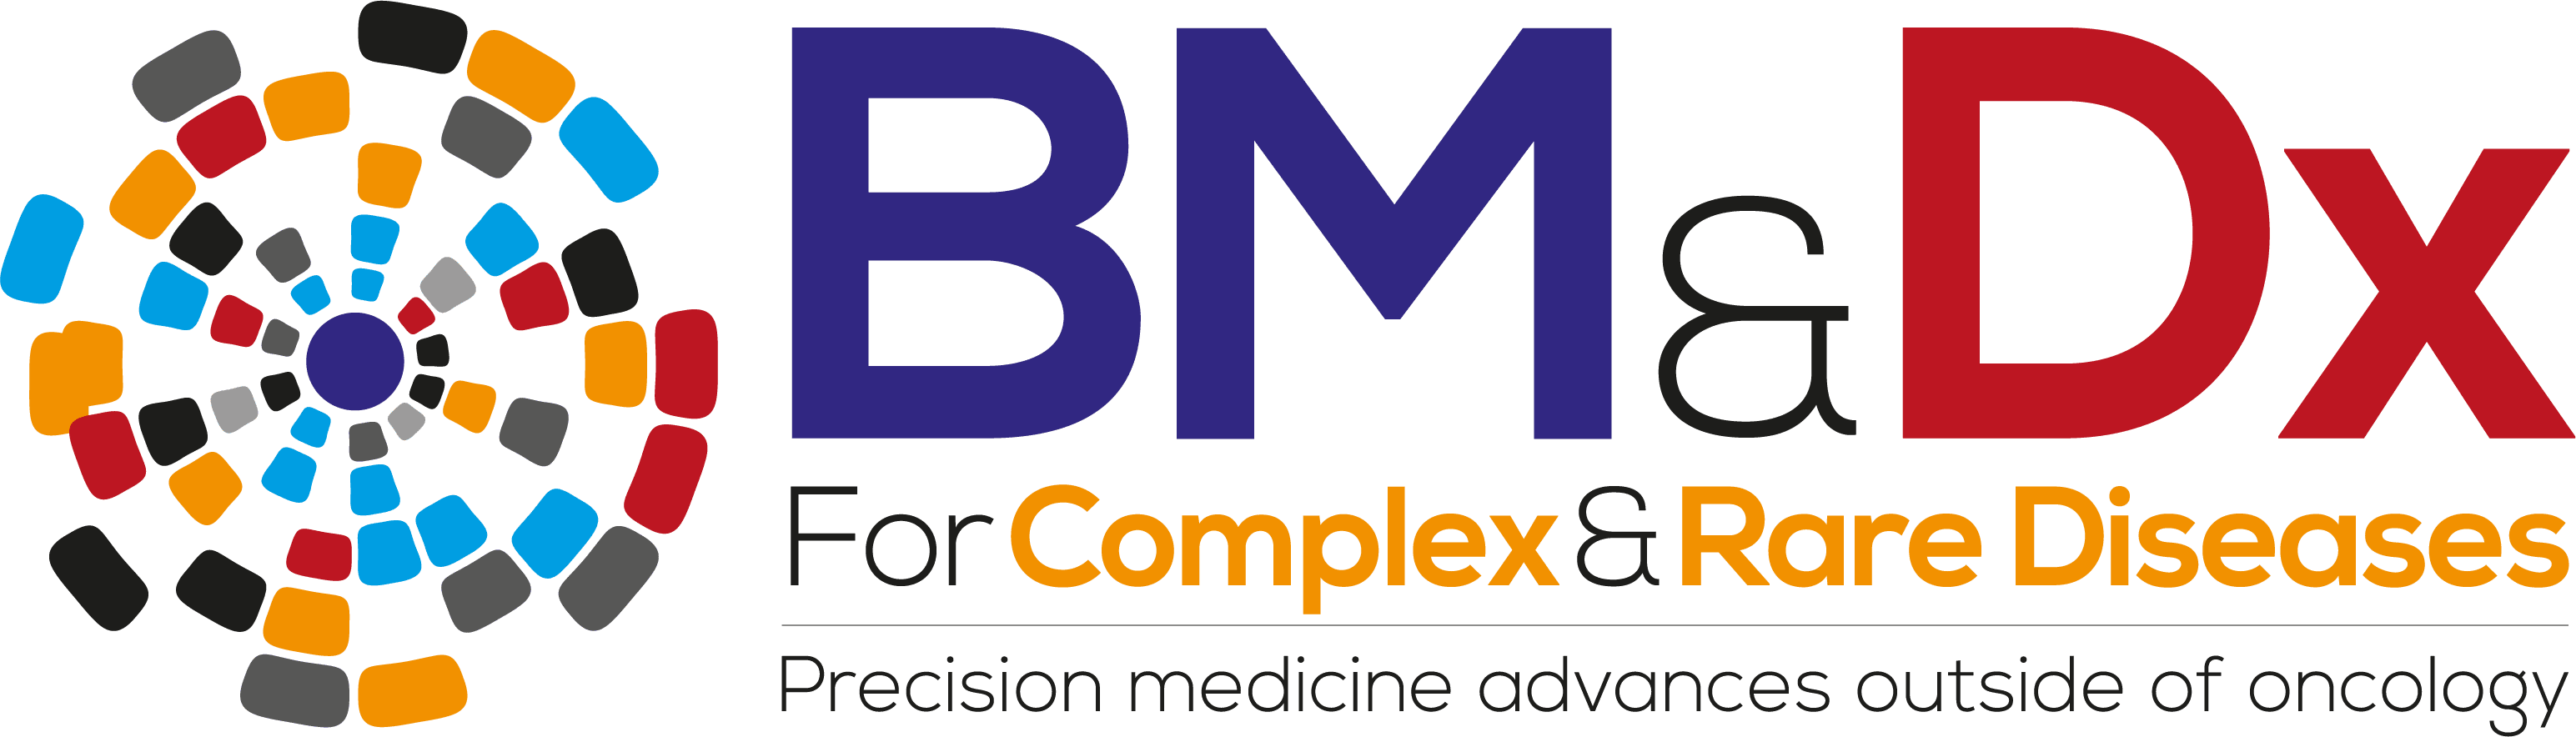 HW190129 BM & Dx For Complex & Rare Diseases logo